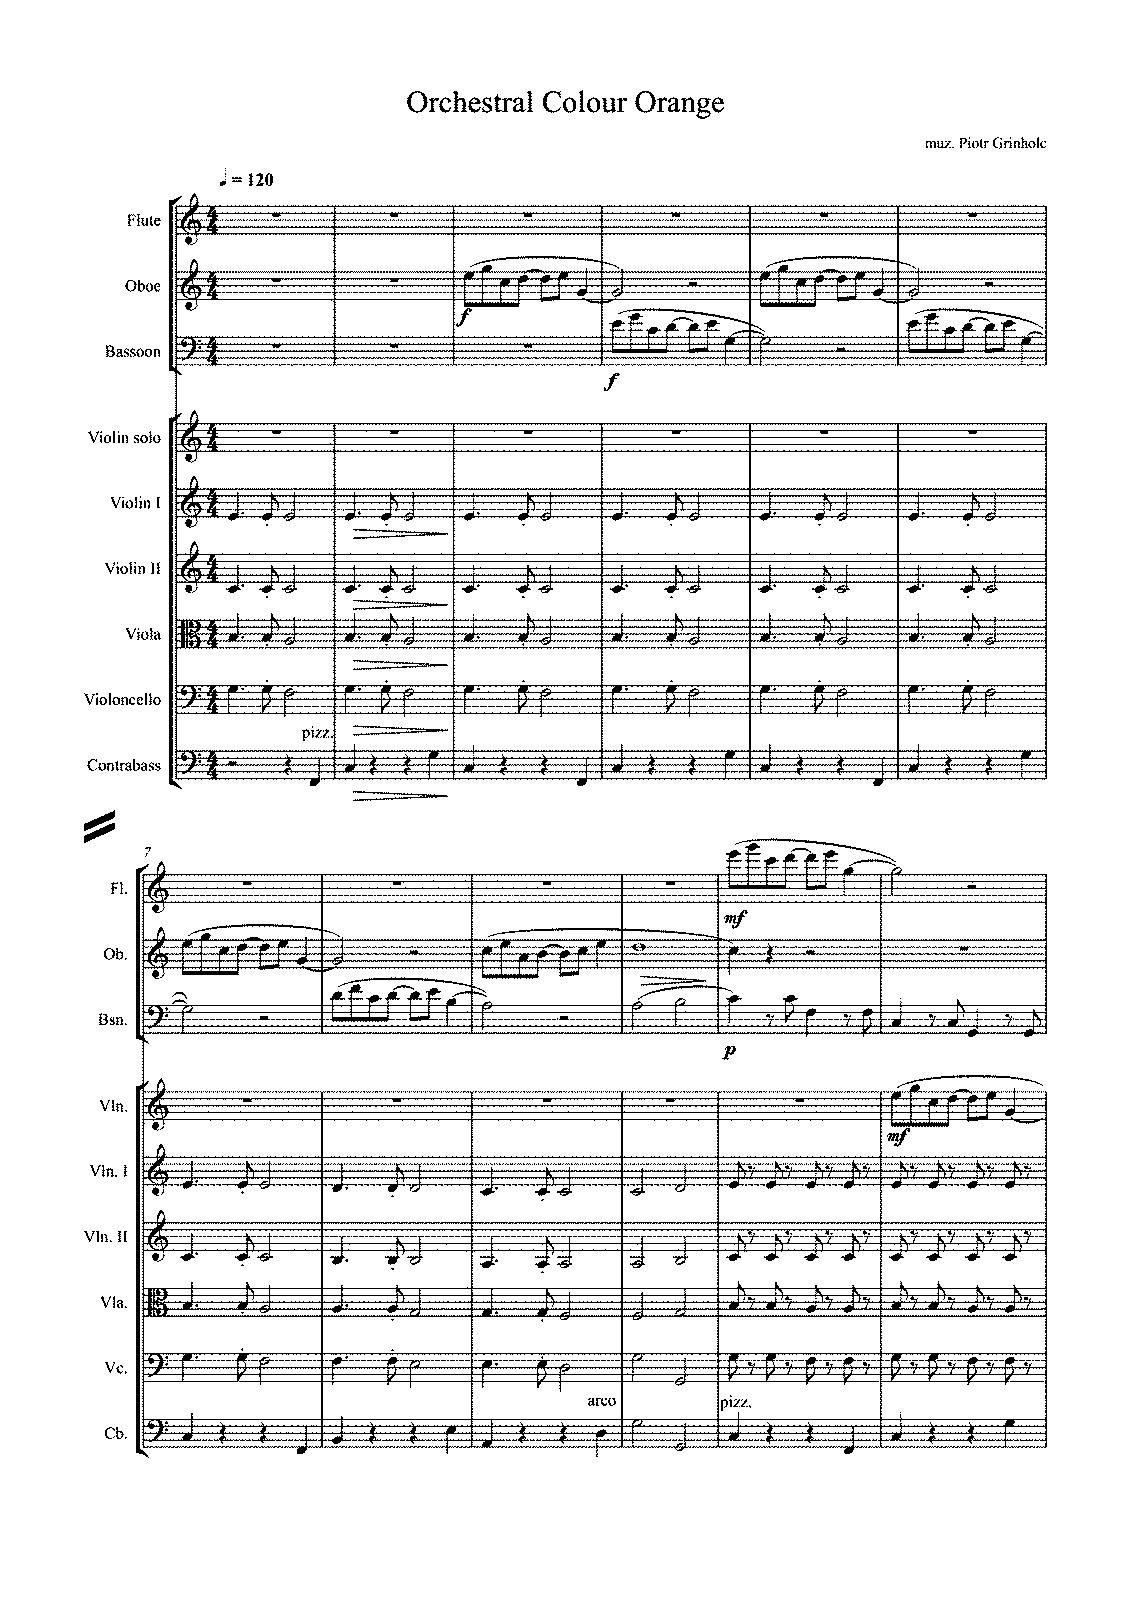 PMLP720851-Orchestral colour - Orange partyt A4.pdf